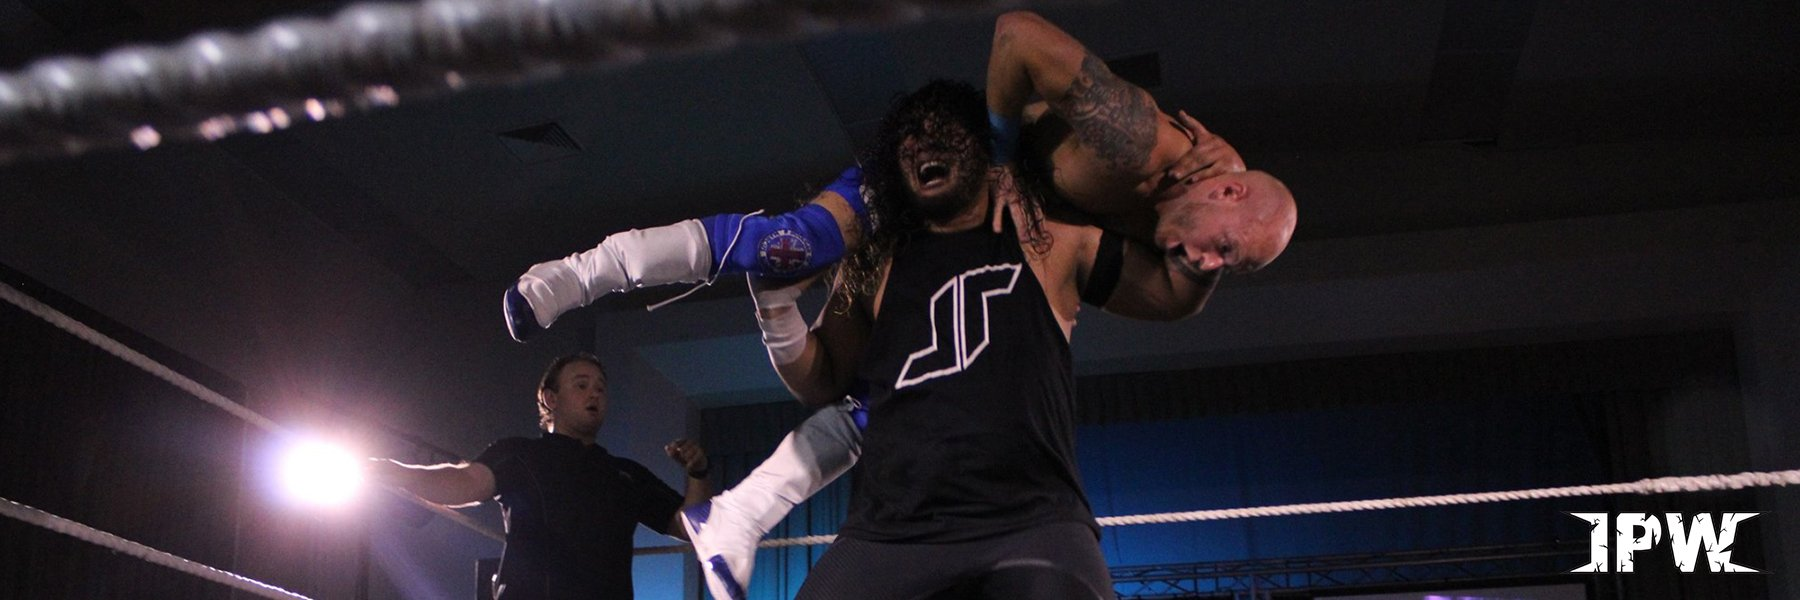 ACTION FROM IMPACT PRO WRESTLING NZ!